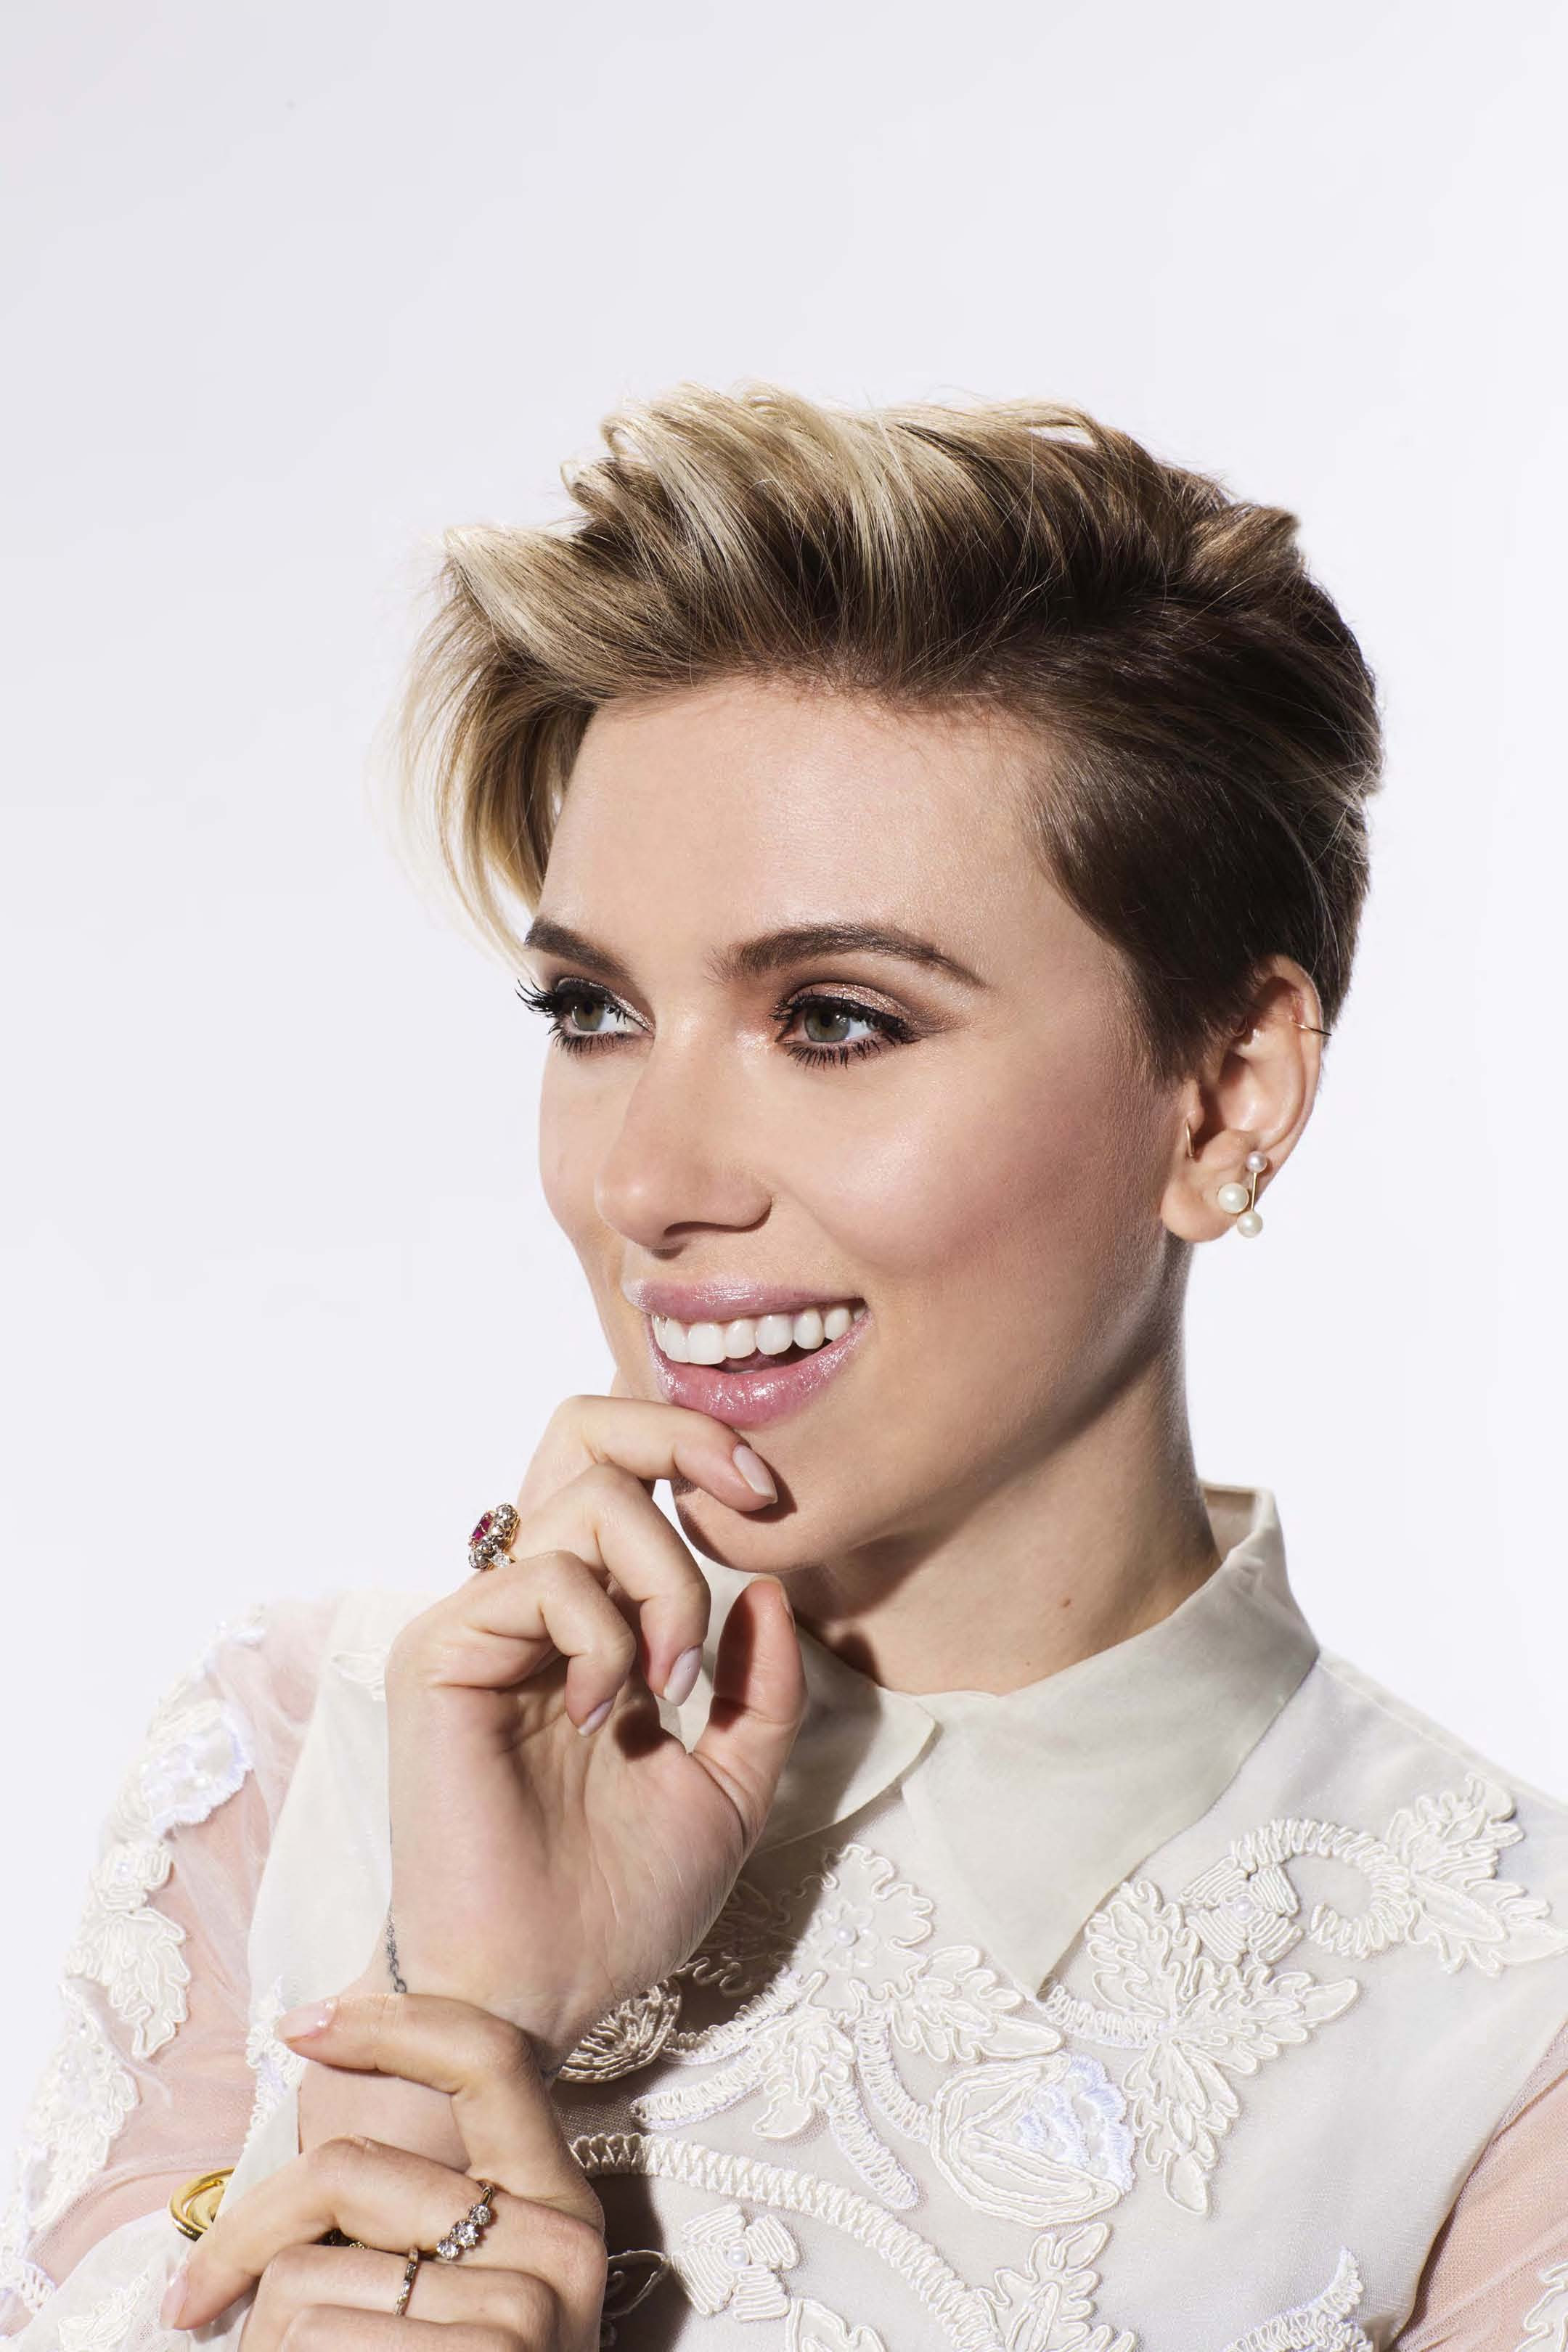 "Scarlett Johansson to Receive 2016 Renaissance Award June 30, 2016 From Gene Siskel Film Center 2 The Gene Siskel Film Center (GSFC) of the School of the Art Institute of Chicago (SAIC) will celebrate one of Hollywood's most talented young actresses when it honors Tony and BAFTA winner and four-time Golden Globe nominee Scarlett Johansson, Thursday, June 30, 2016*, at The Ritz-Carlton Chicago (160 E. Pearson St.). ""Celebrate Scarlett"" will pay tribute to Johansson's accomplishments as an actor as well as give attendees the opportunity to hear an intimate conversation, led by Chicago Sun Times and FOX News Chicago Film Critic Richard Roeper, providing insights into her creative process and influences, favorite roles, upcoming projects and more. A retrospective of film clips from some of her most memorable performances will accompany the conversation highlighting her illustrious career. The evening will culminate with the presentation of the Gene Siskel Film Center Renaissance Award to Johansson by SAIC President Dr. Walter E. Massey and GSFC Advisory Board Chair Ellen Sandor."